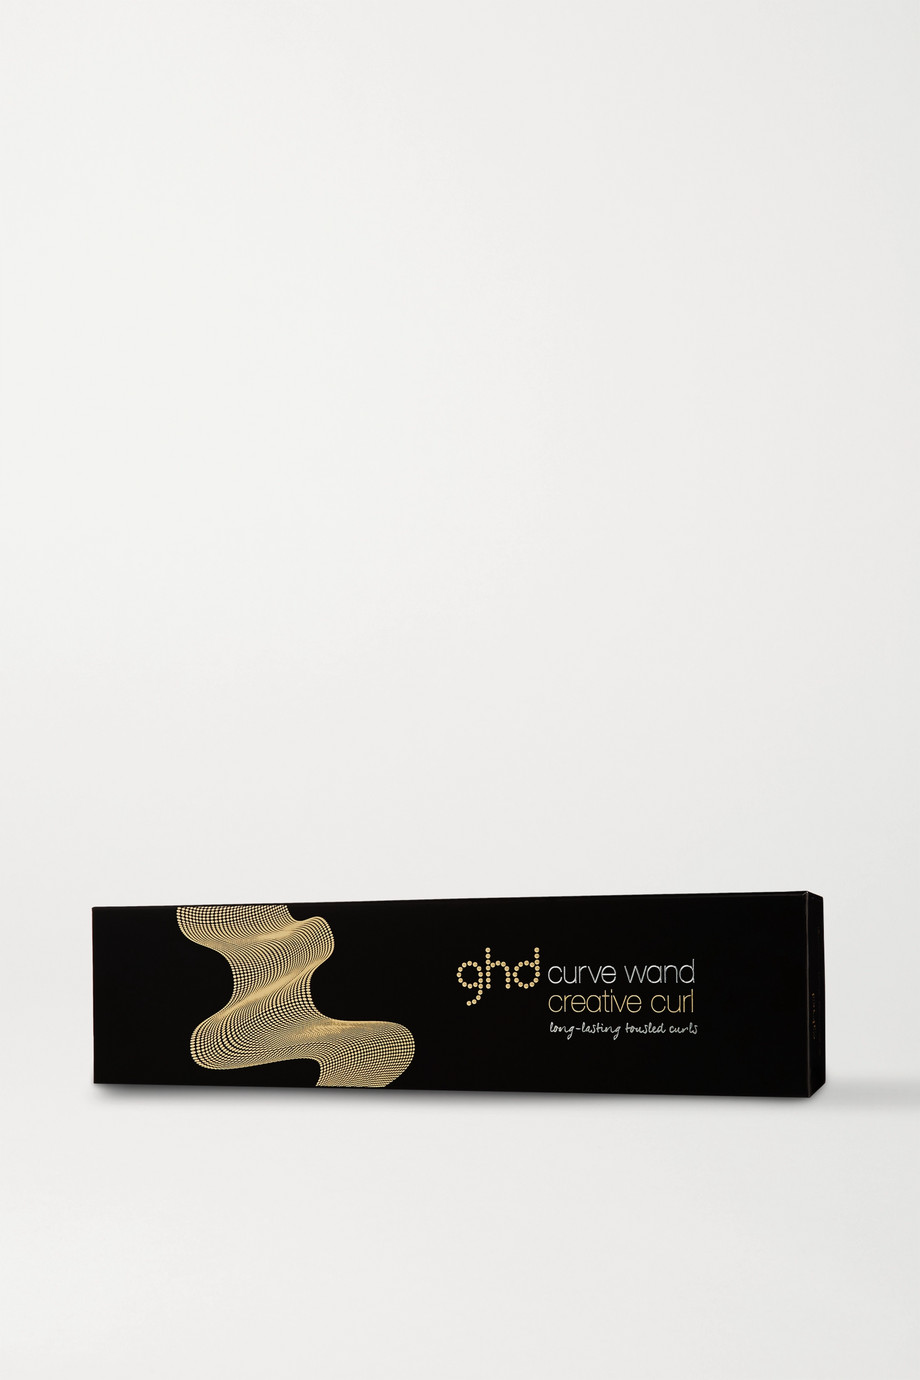 GHD Creative Curl Wand - UK 3-pin plug